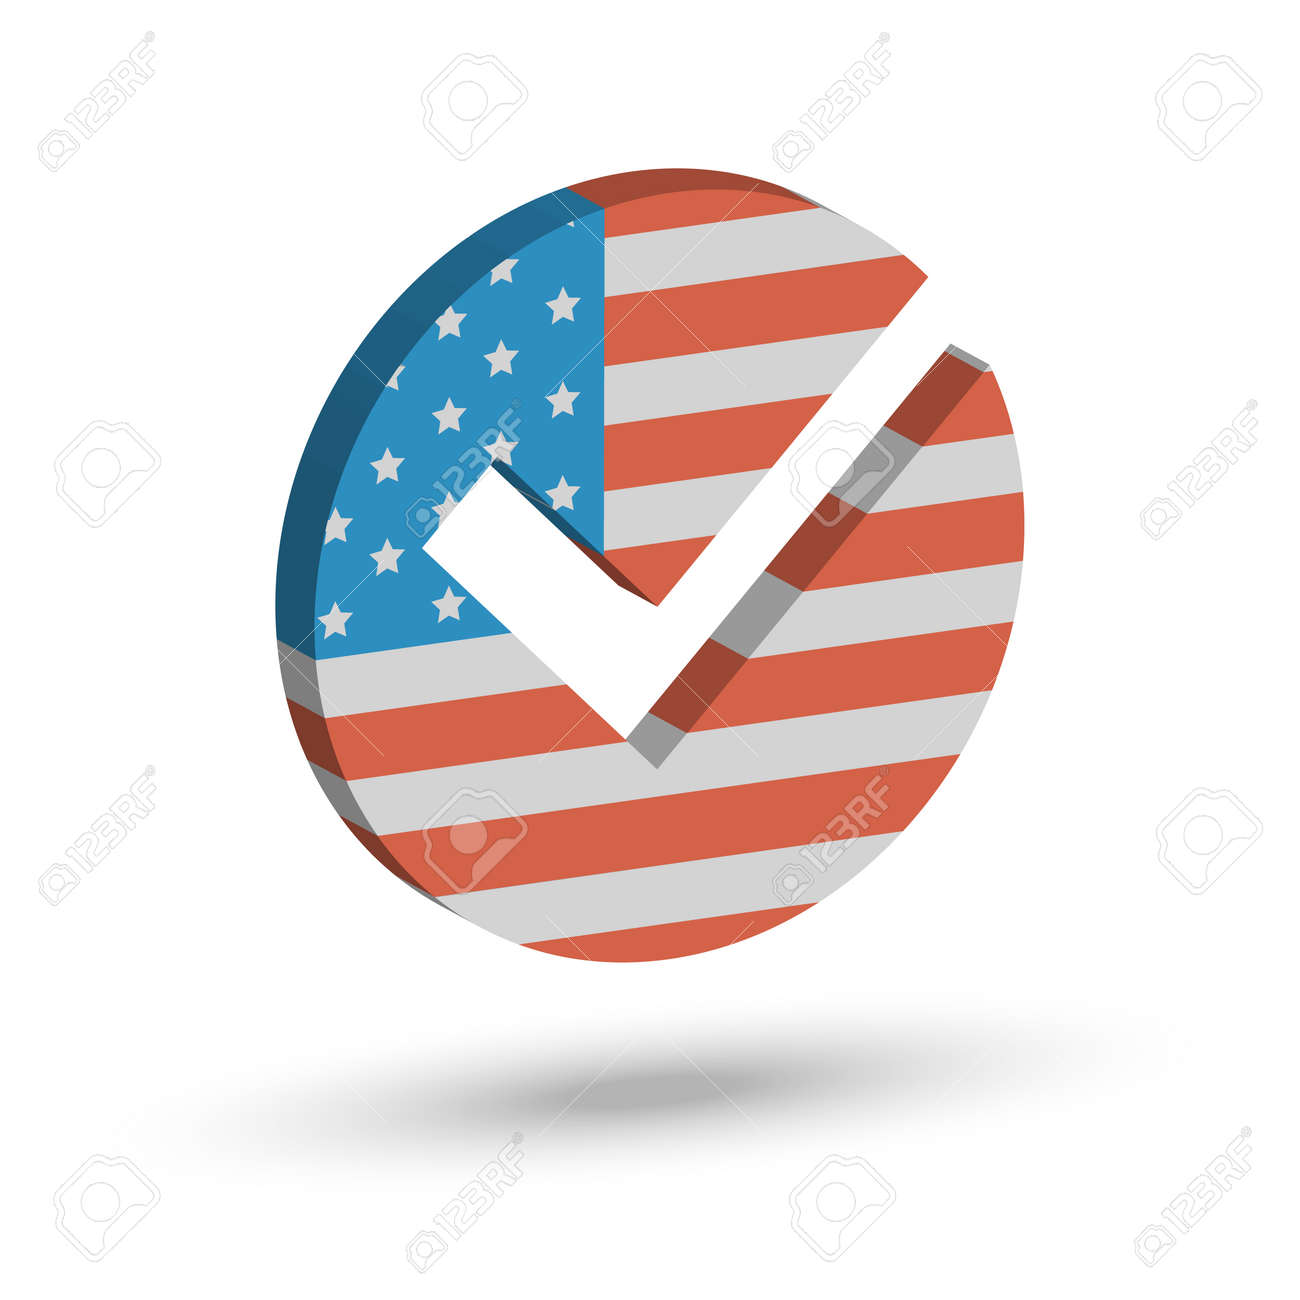 Check mark symbol in the form of american flag royalty free cliparts check mark symbol in the form of american flag stock vector 66982039 biocorpaavc Image collections